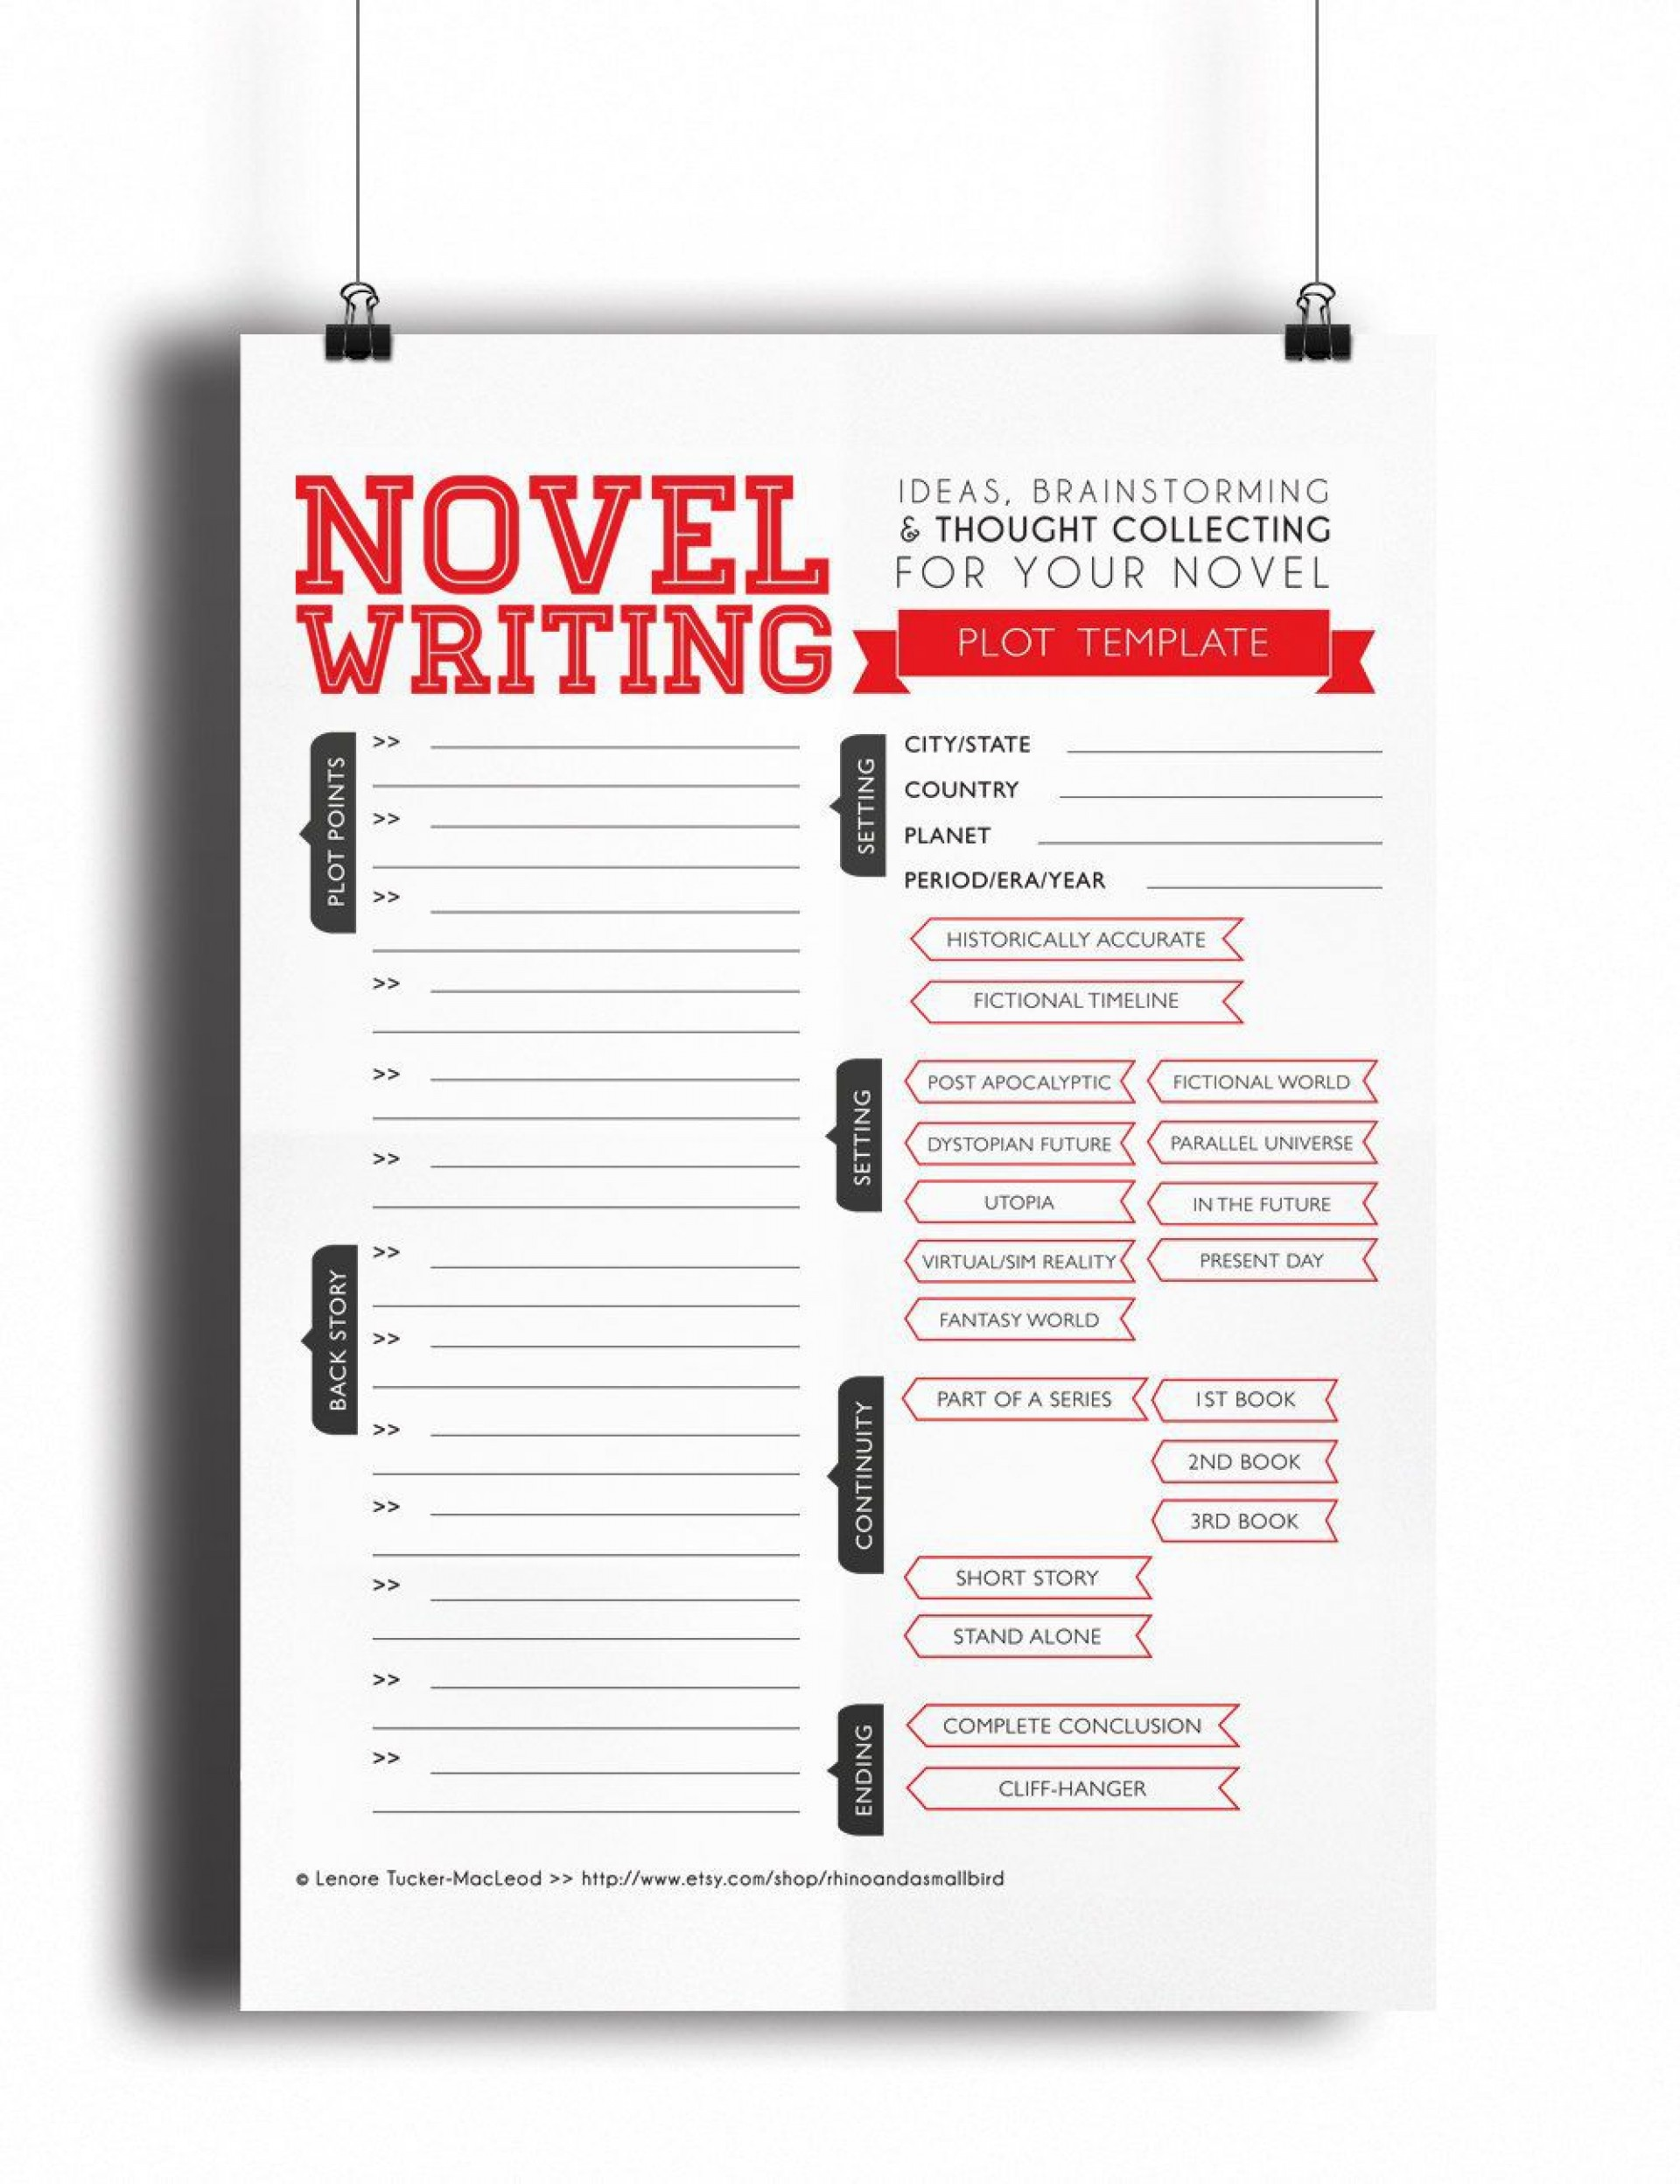 003 Awesome Writing A Novel Outline Template Highest Clarity  Sample1920